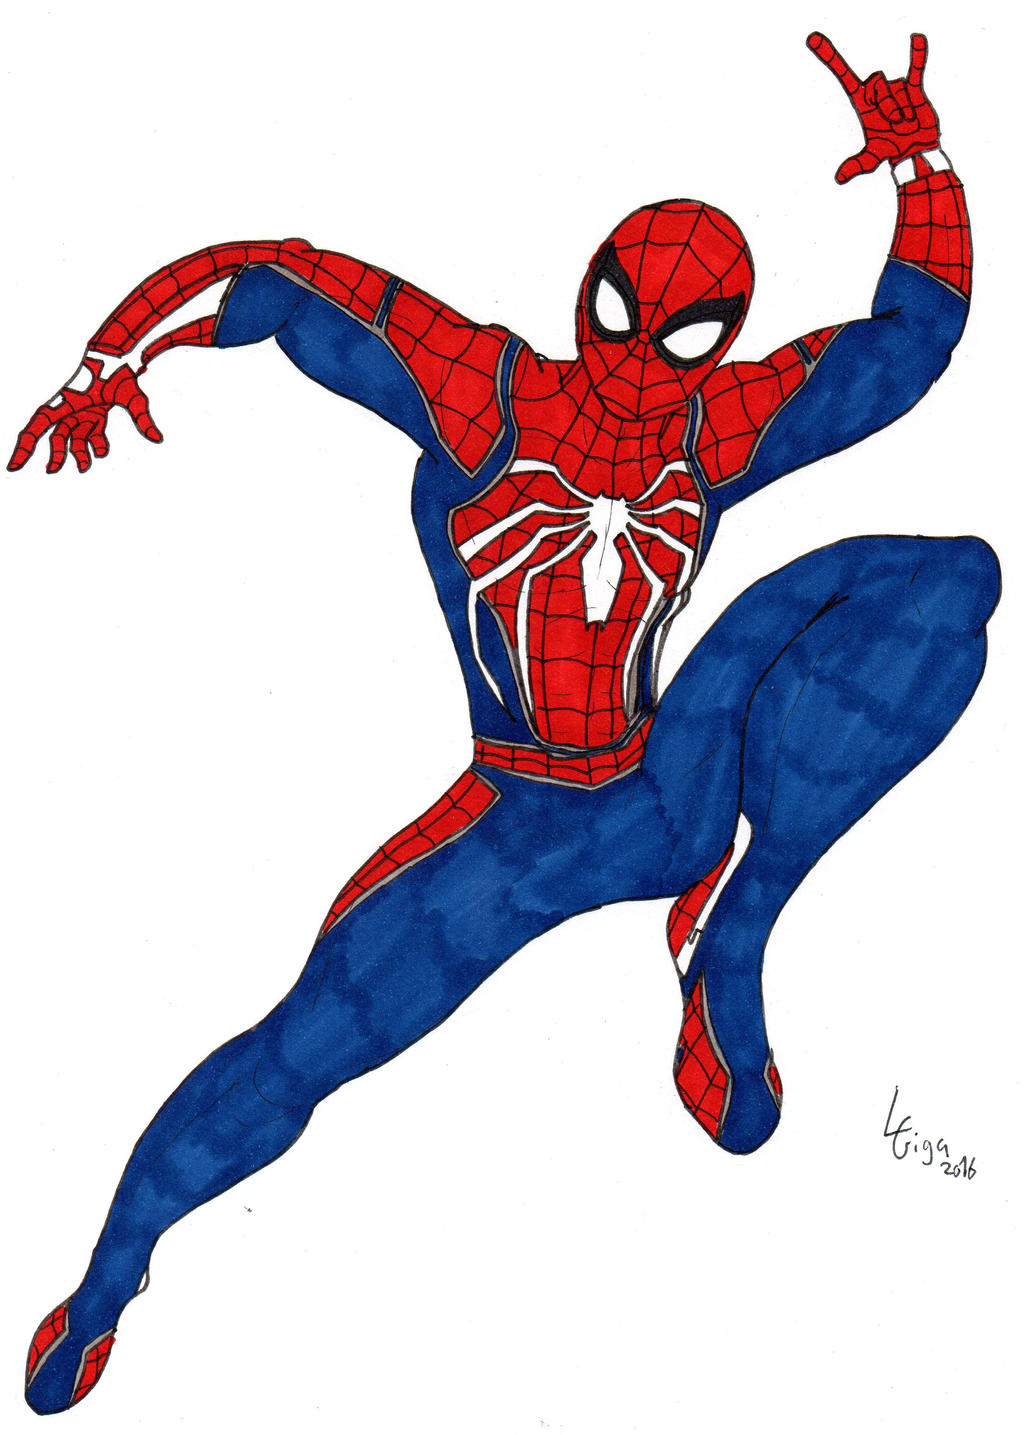 Spider Man Ps4 Insomniac Games By Clemi1806 On Deviantart